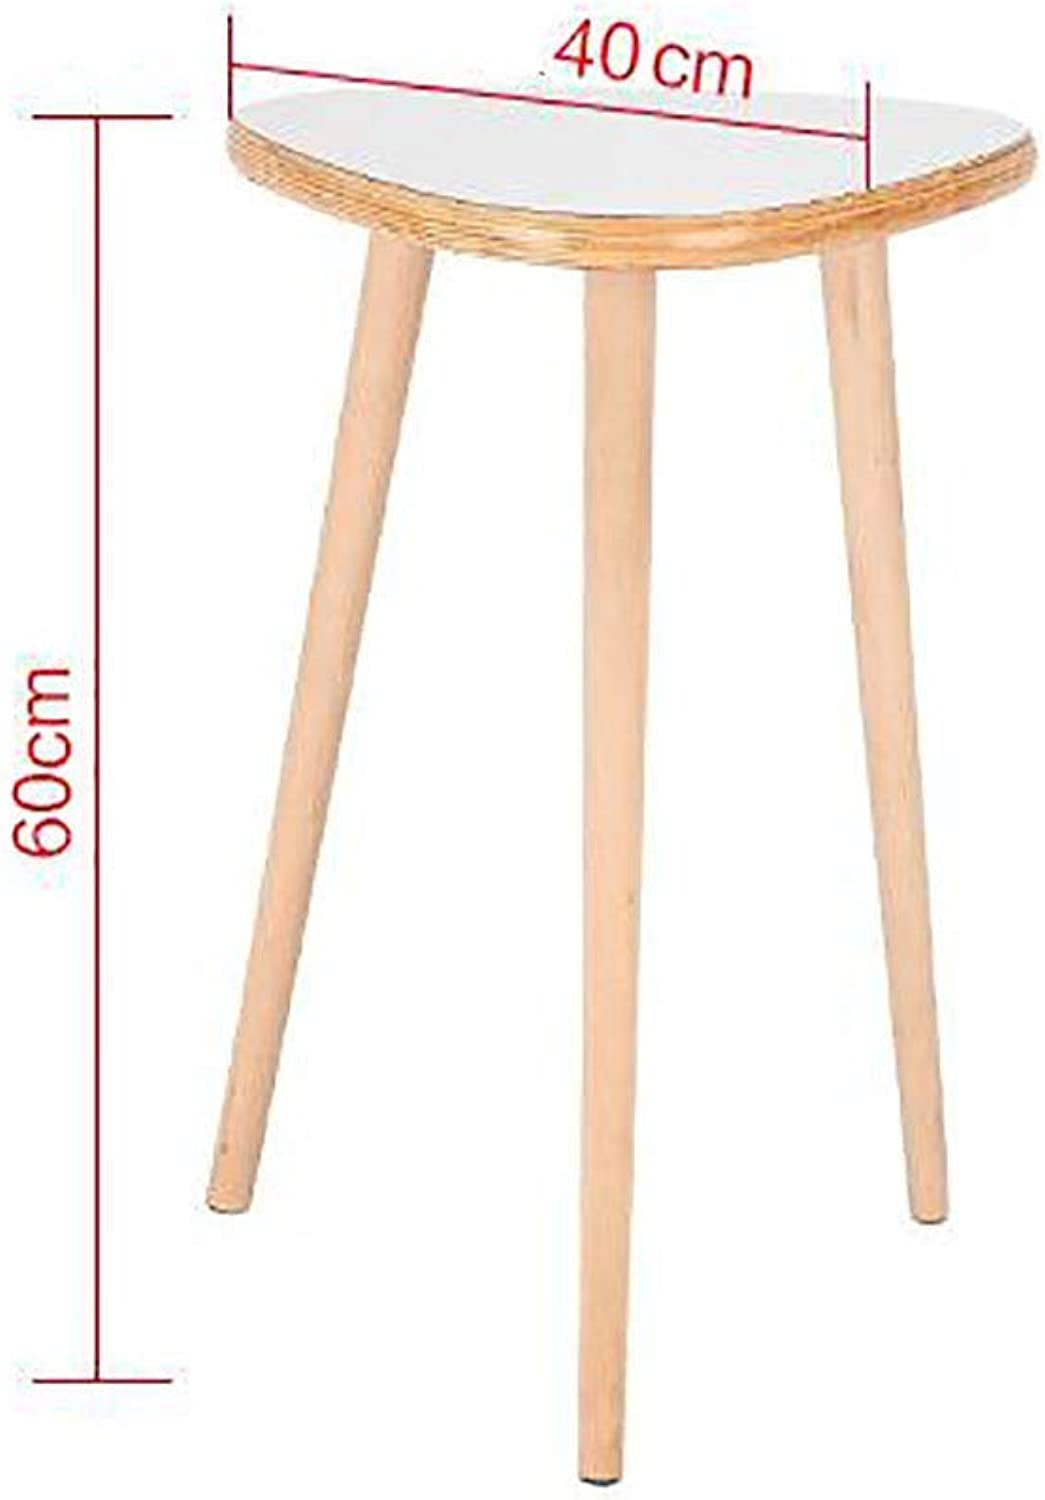 TJTG Solid Wood Foot Tea Table Sofa Side Small Round Table Nordic Mini Round Table Corner Coffee Table Home Office Desk (Size   40cm)